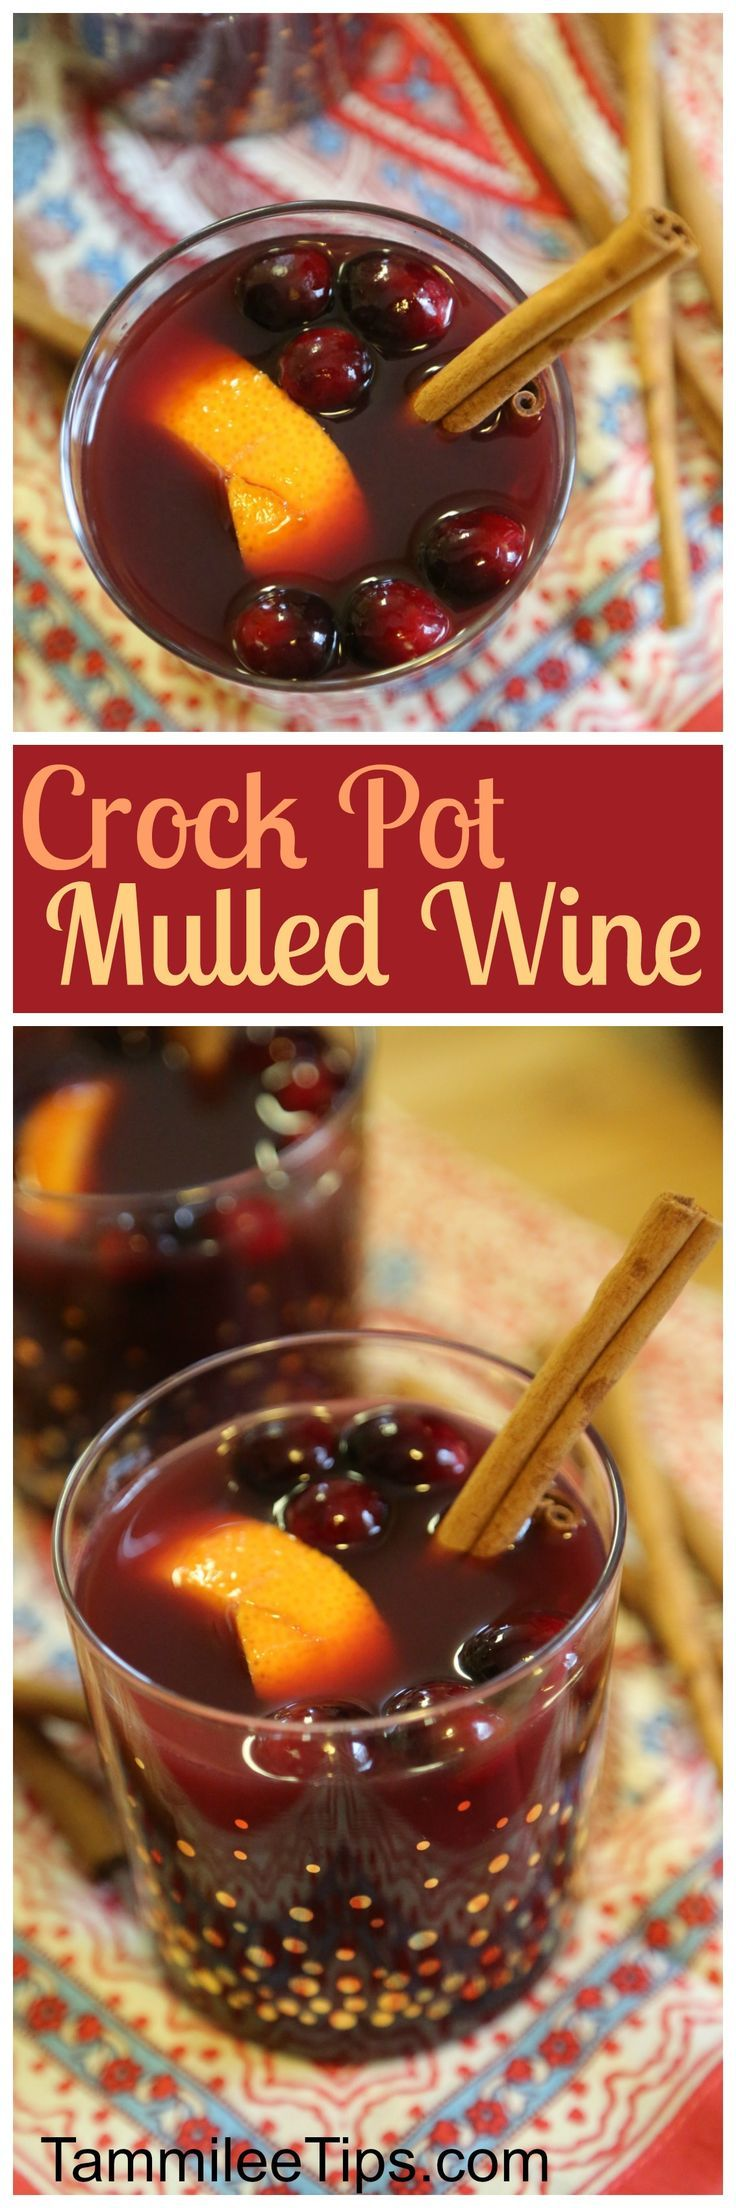 Super easy Crock Pot Mulled Wine Recipe! This slow cooker hot wine cocktail is perfect for parties, Christmas, Thanksgiving, families or when you need to warm up your insides. Cranberries, orange, cinnamon and more make this crock pot recipe delicious!